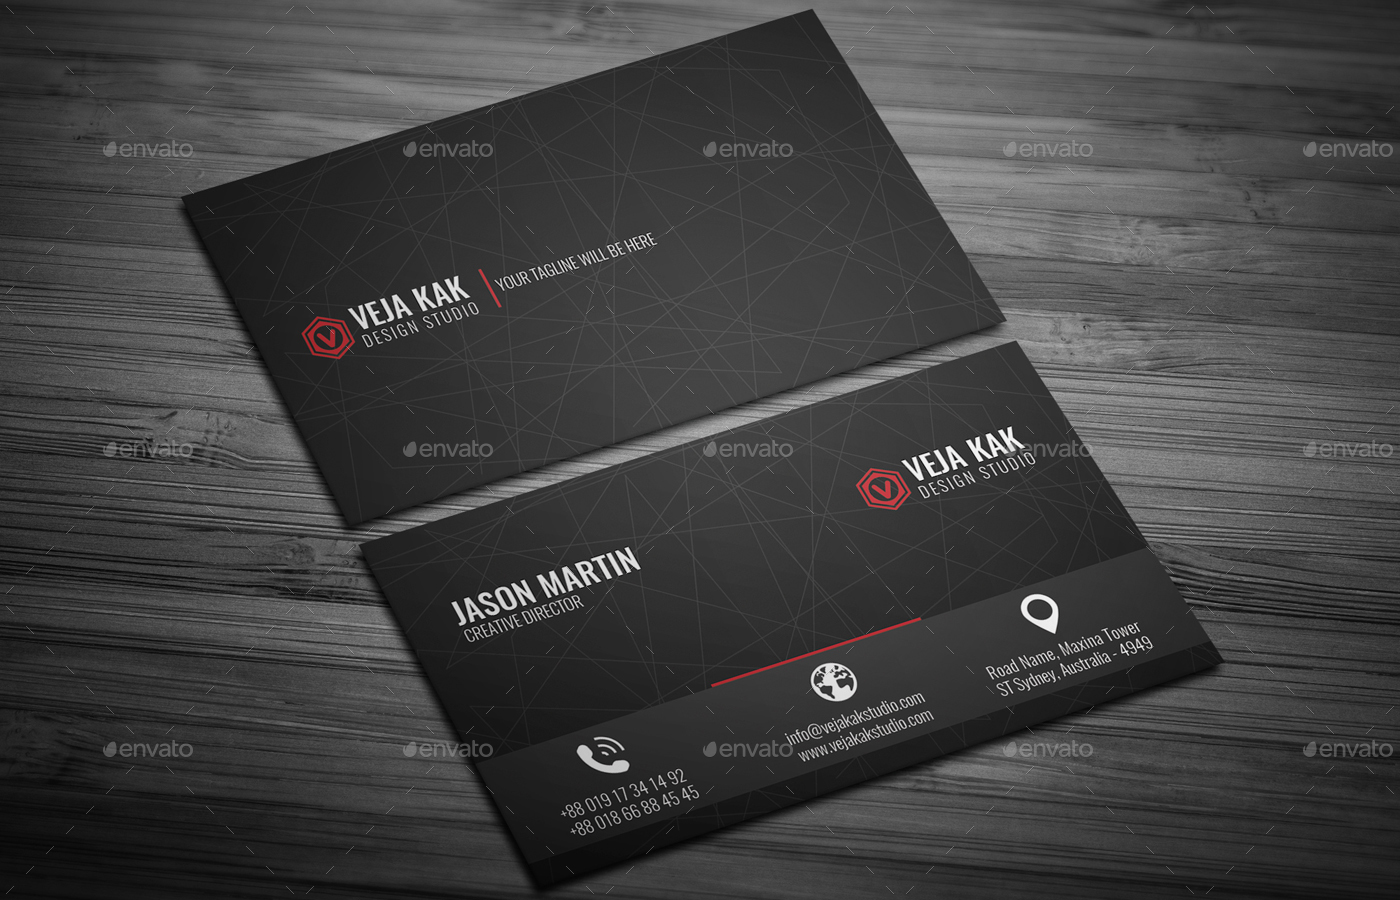 Minimal Business Card by vejakakstudio | GraphicRiver